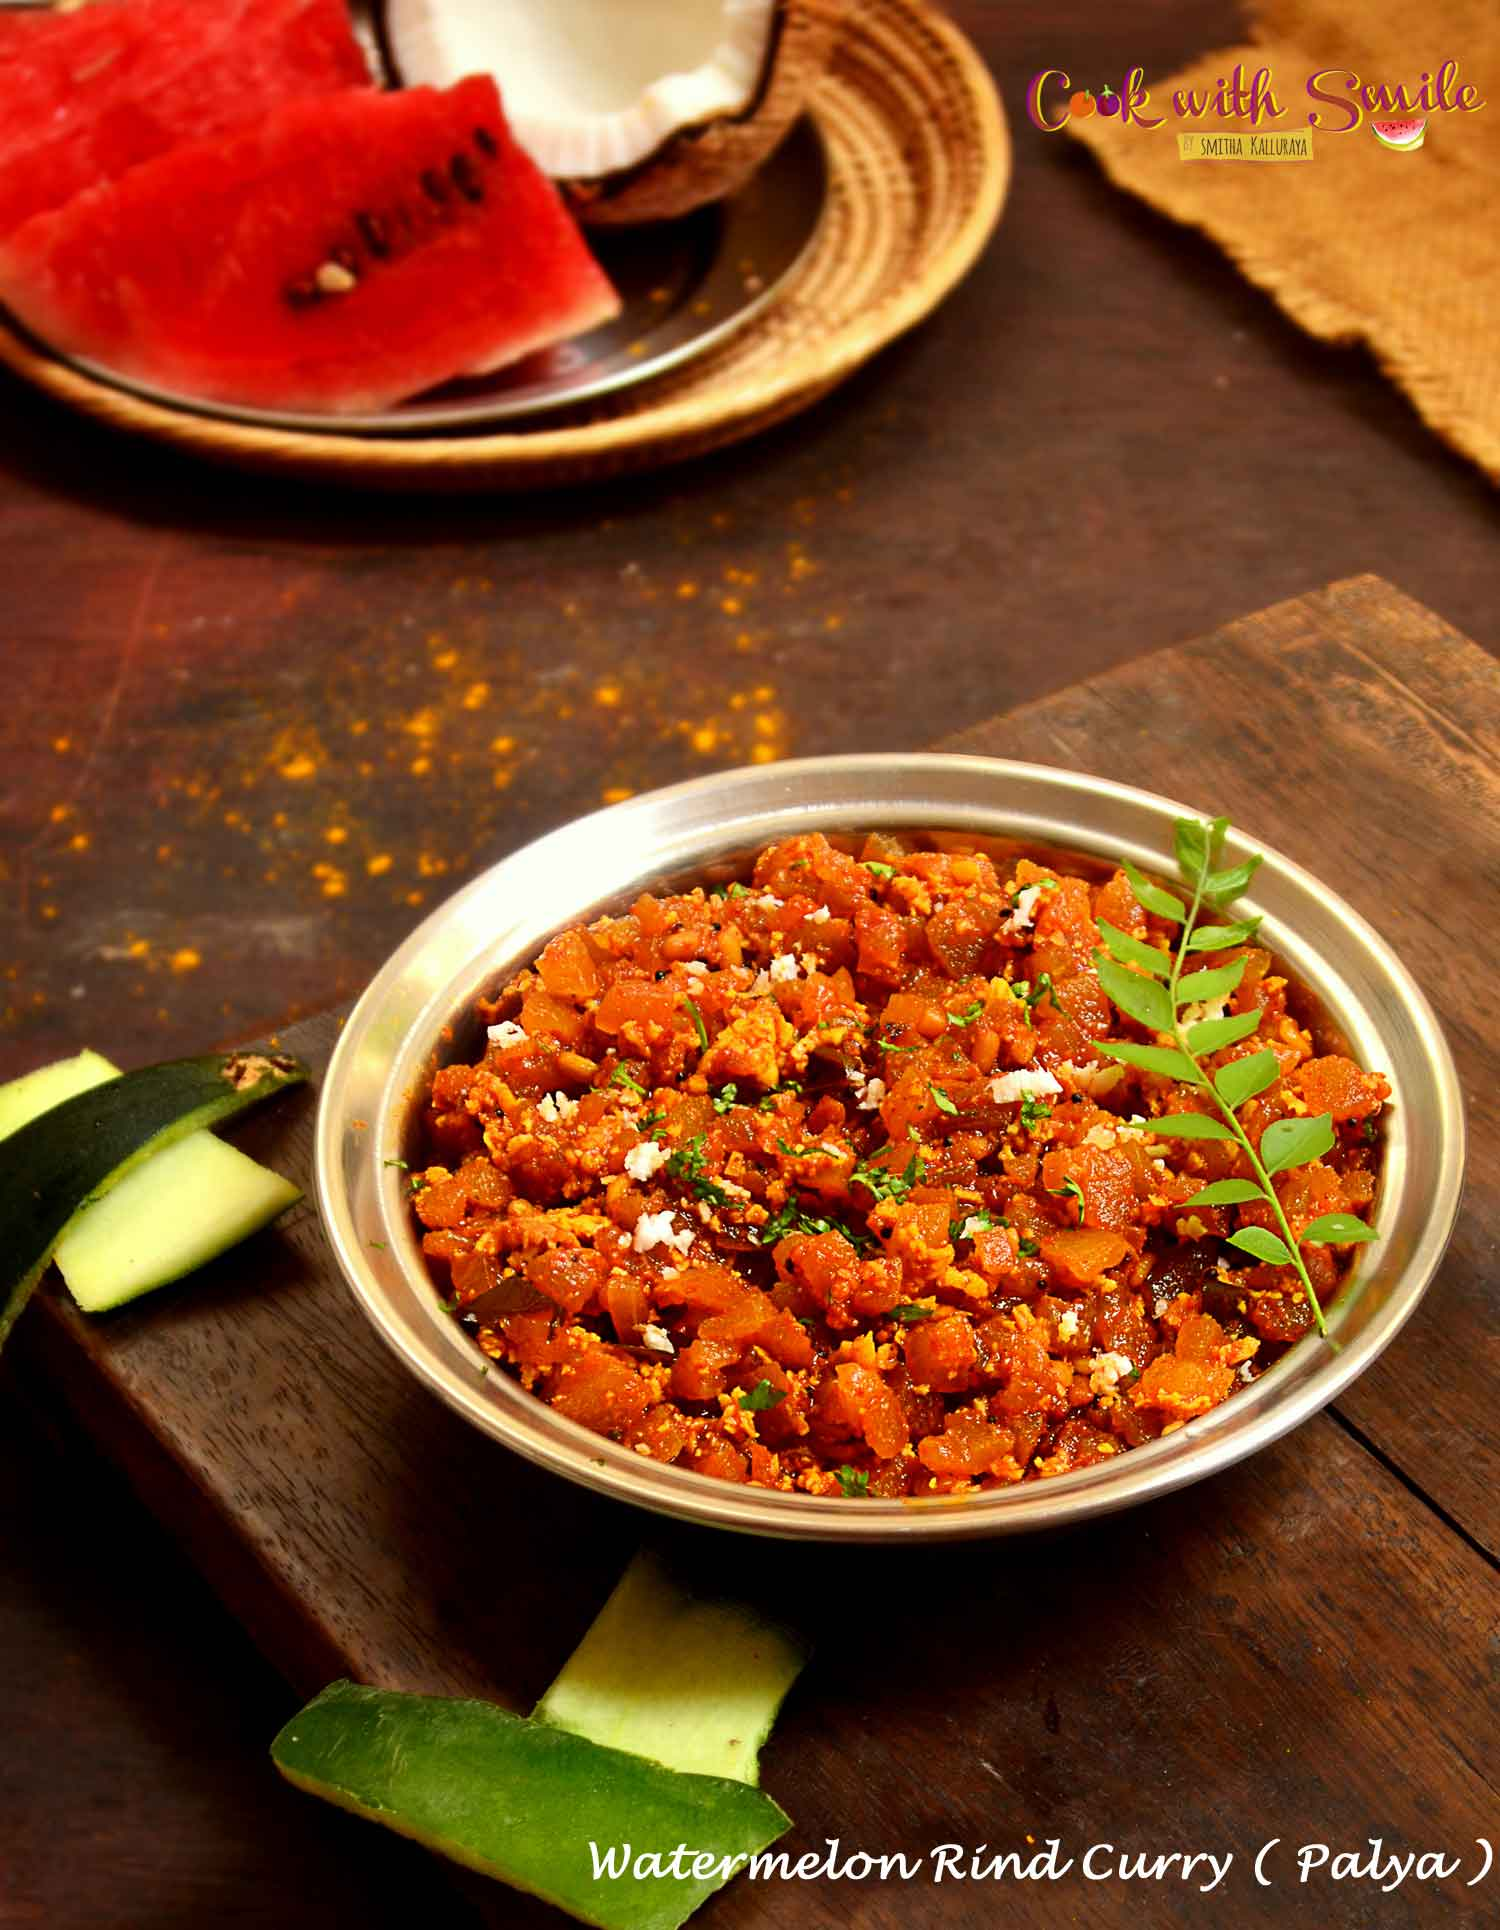 WATERMELON RIND CURRY